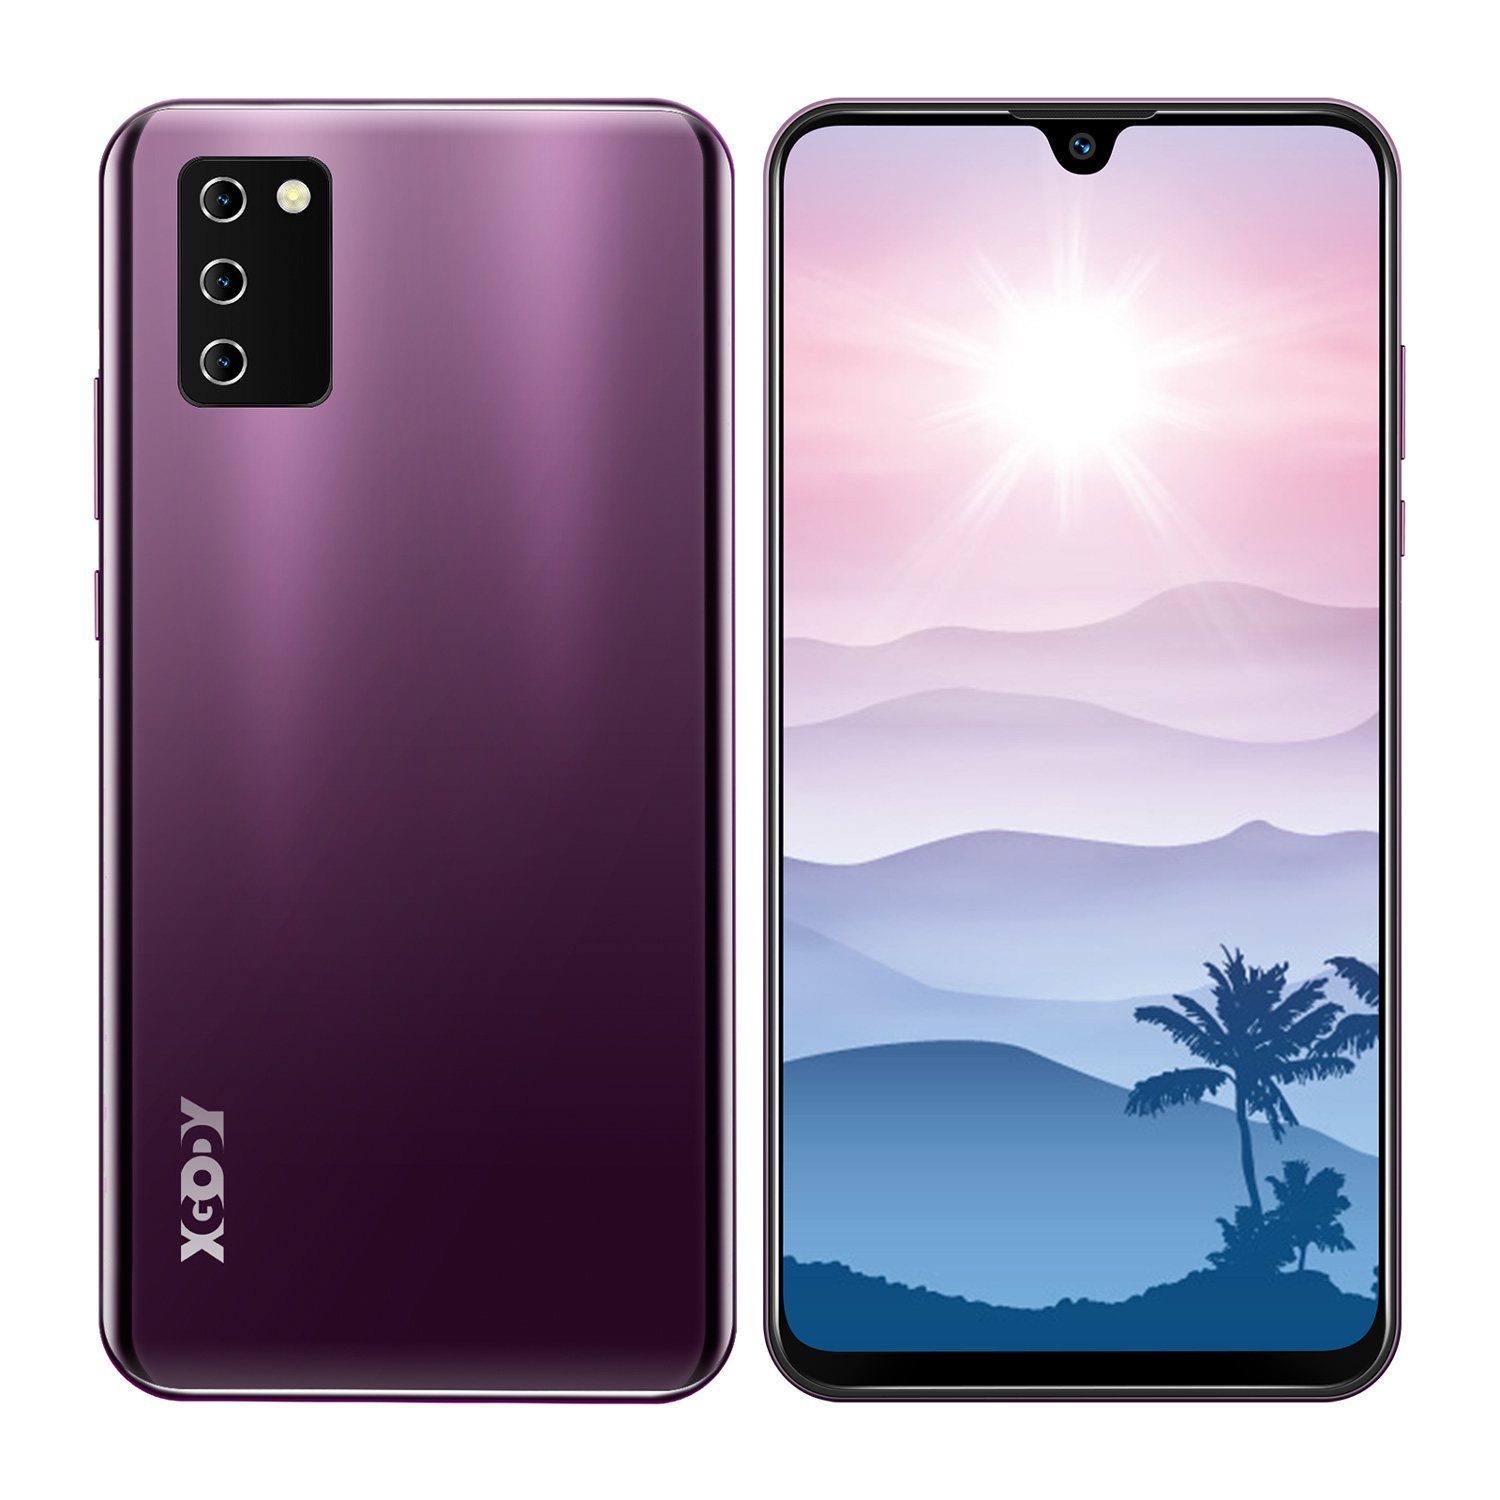 XGODY NOTE 10 Android 9.0 4G Mobile Phones 2GB RAM 16GB ROM Face ID 5MP Camera Dual SIM GPS WIFI 7.2